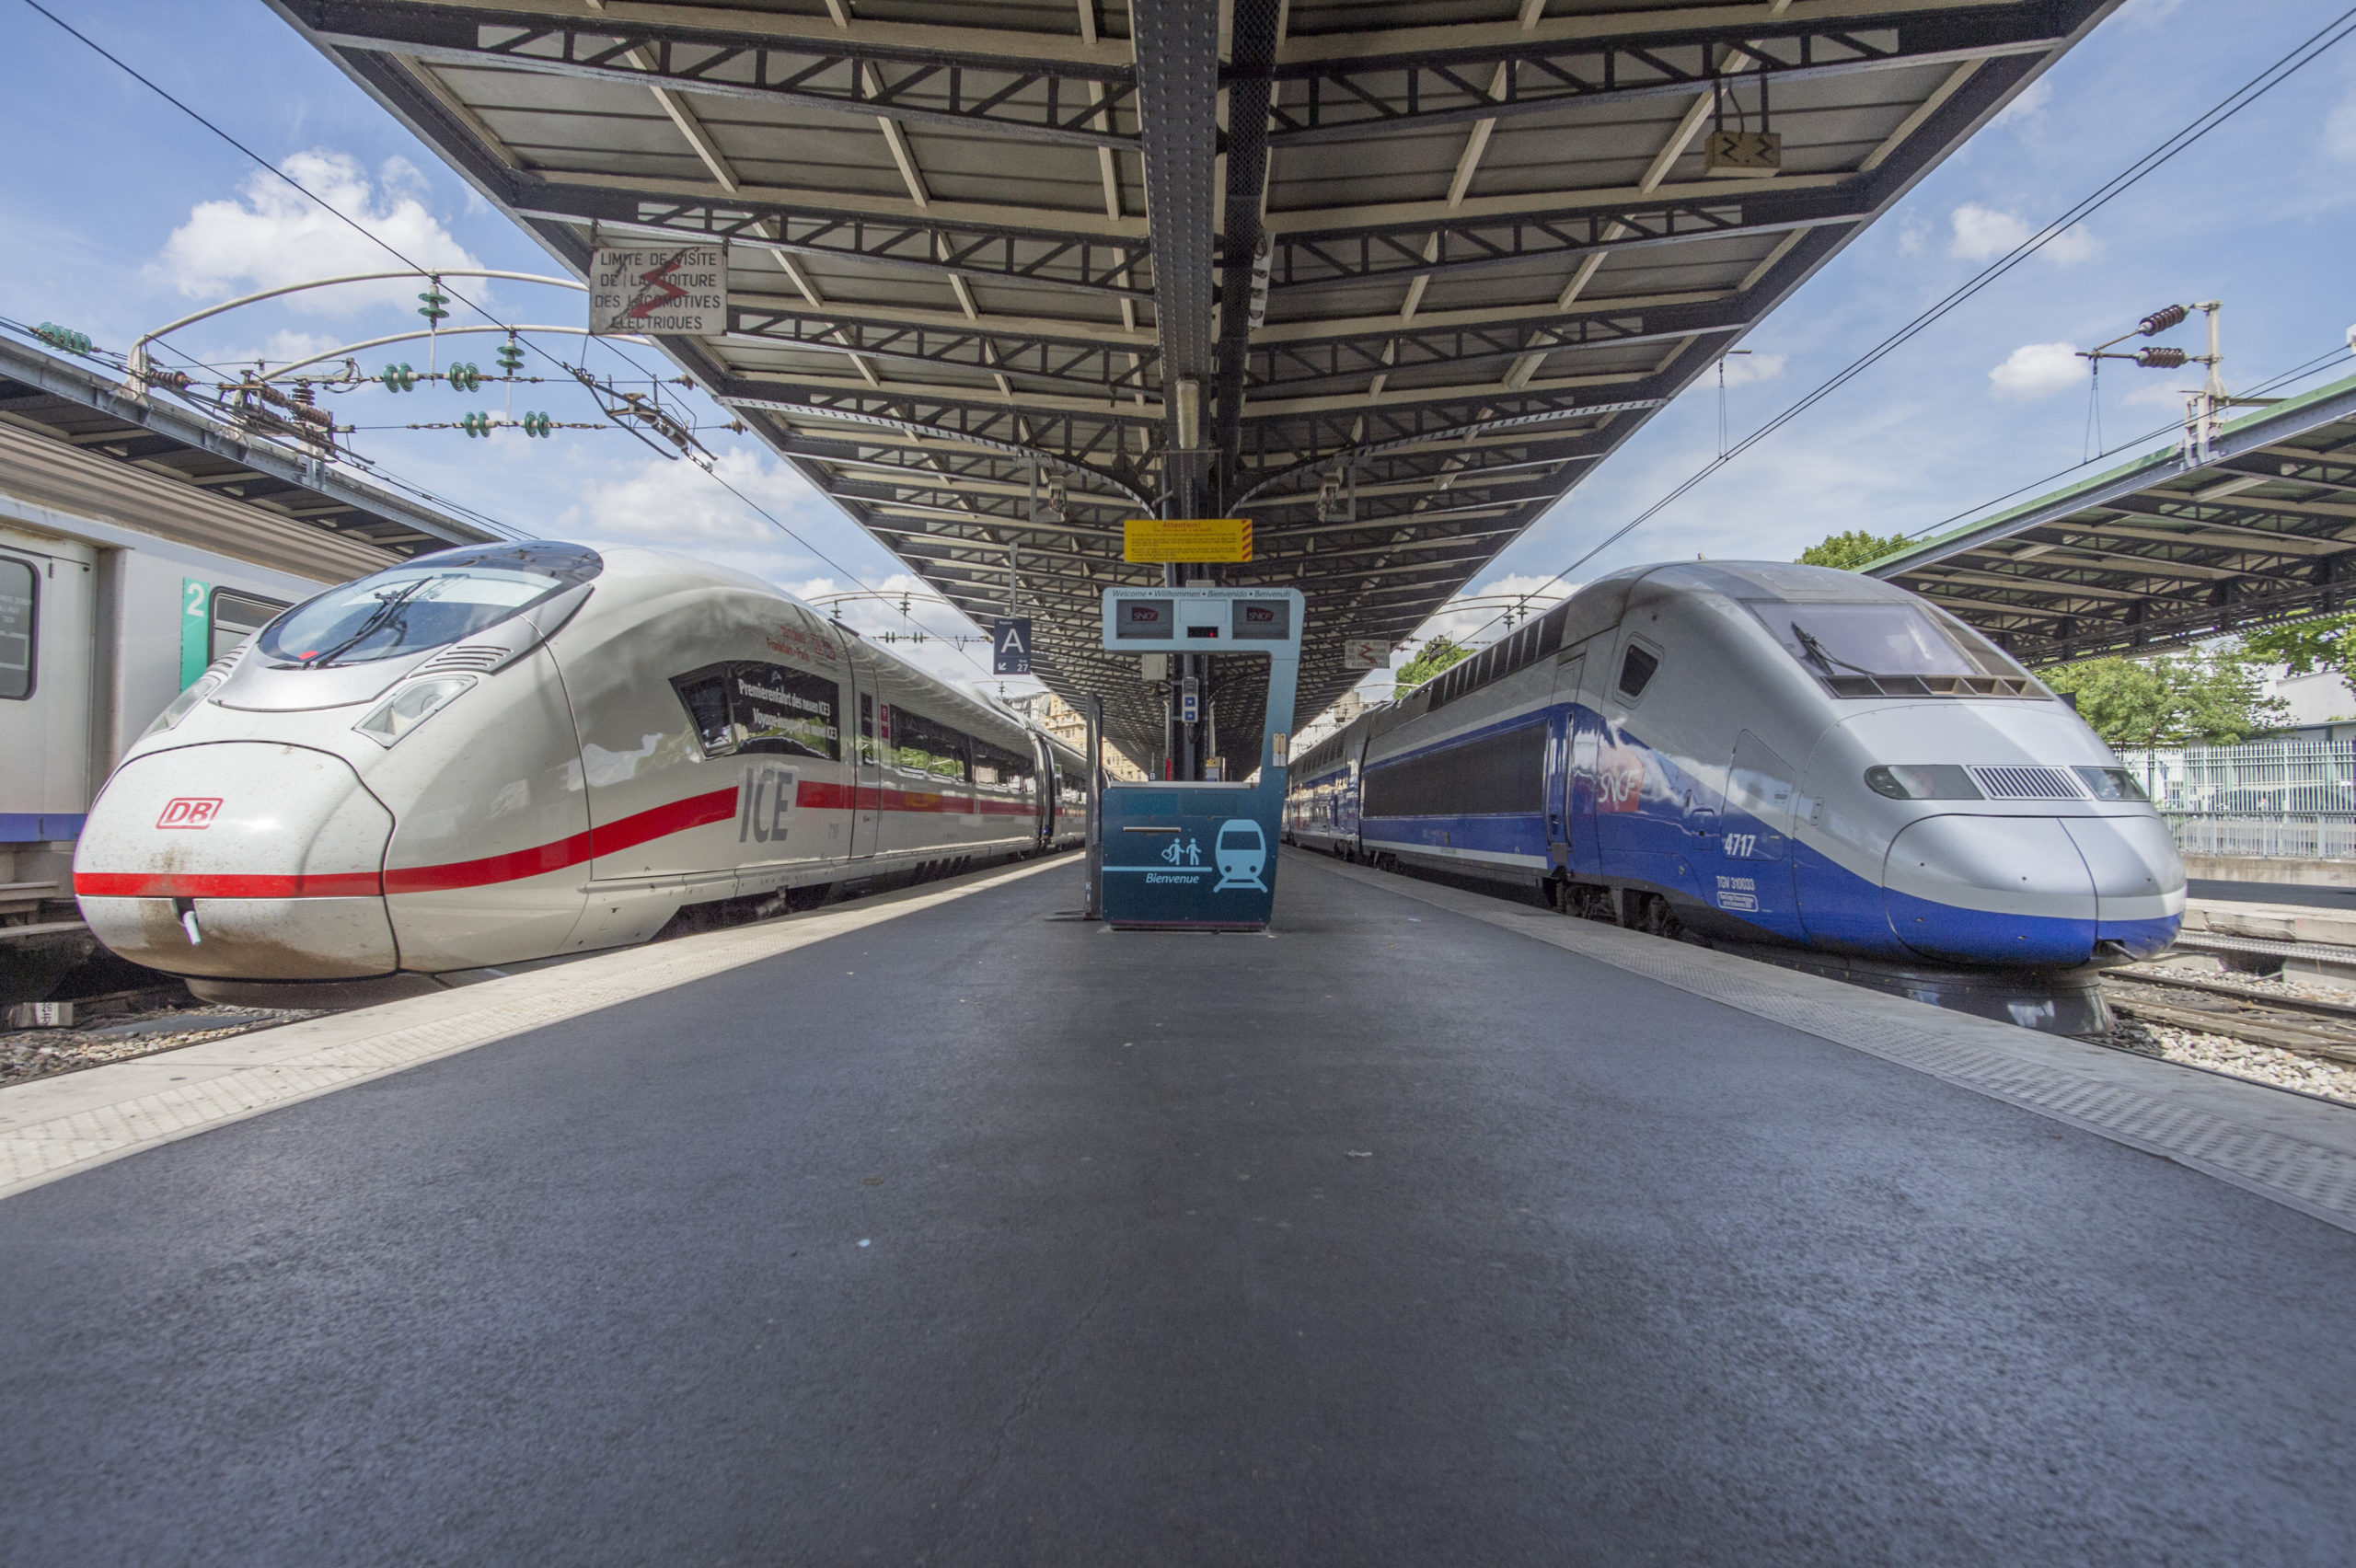 ICE and TGV side by side in Paris